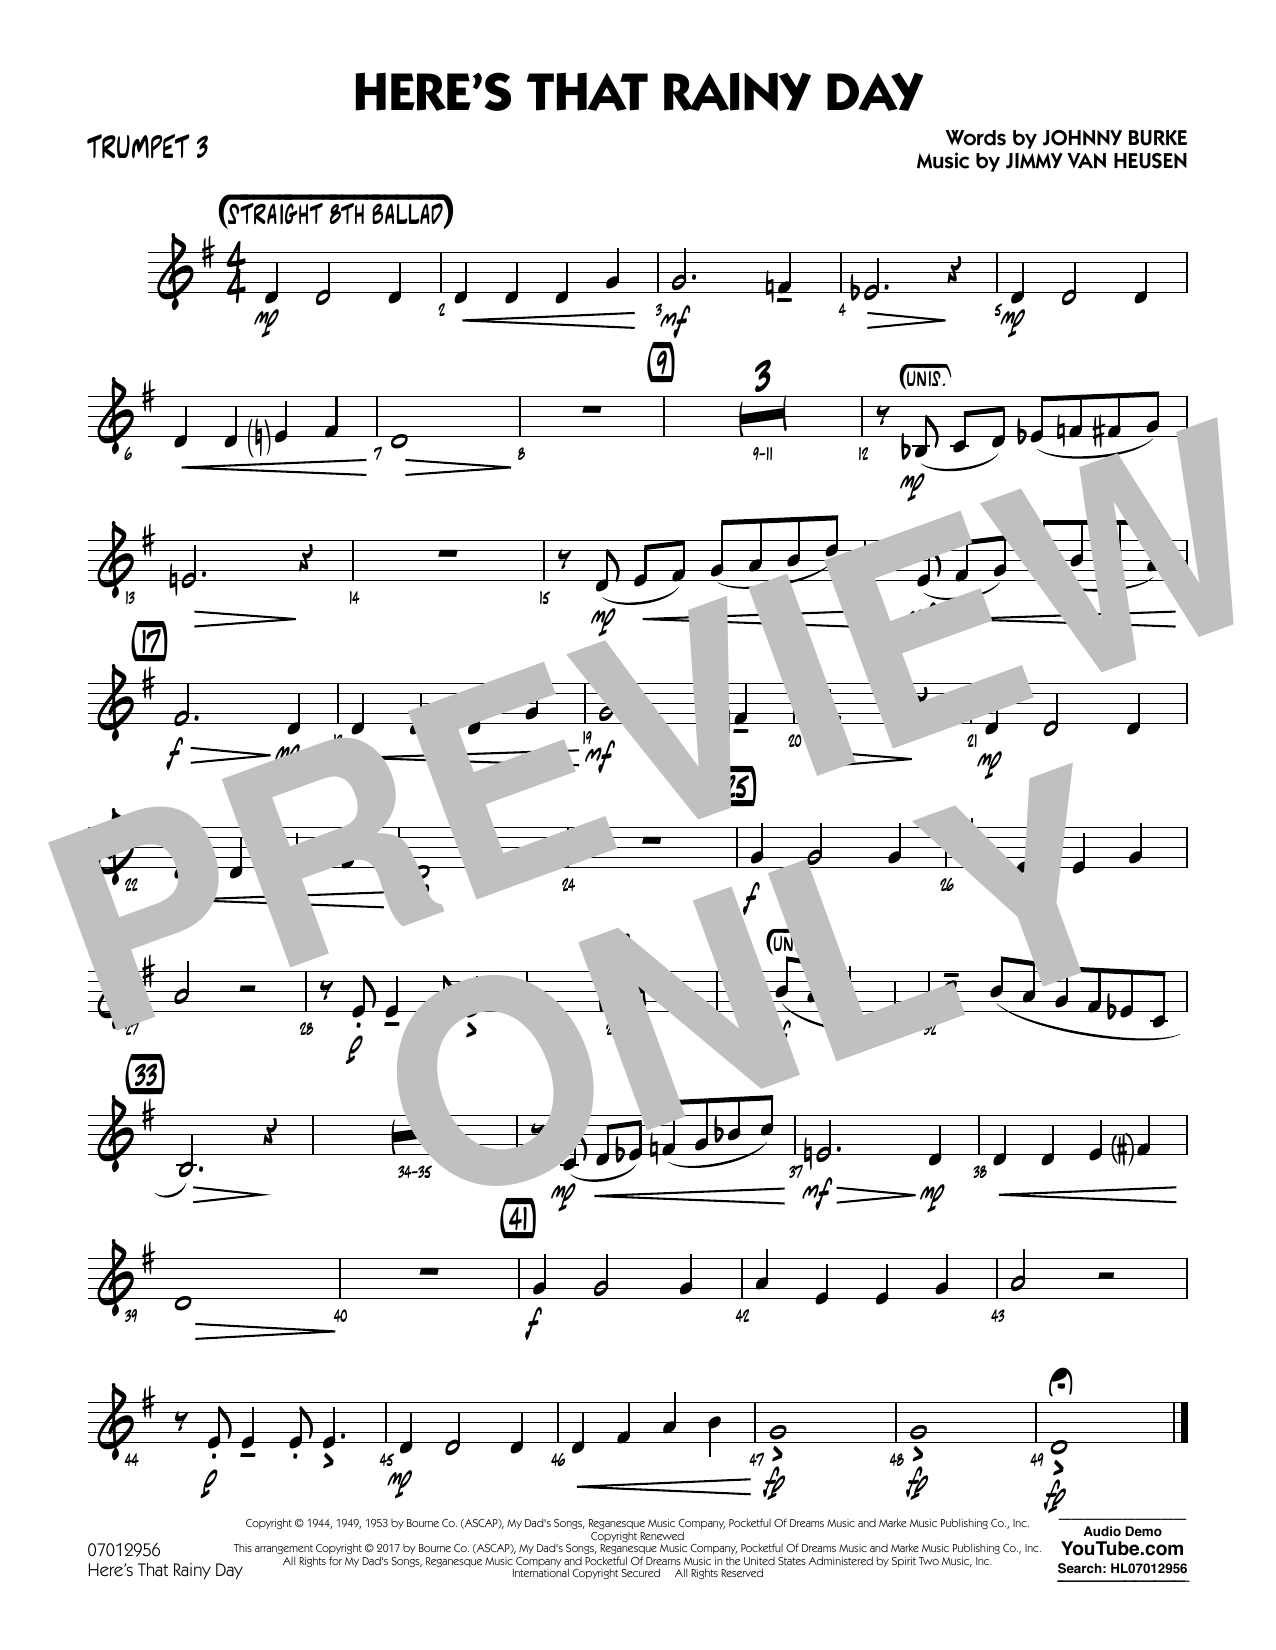 Here's That Rainy Day - Trumpet 3 Sheet Music